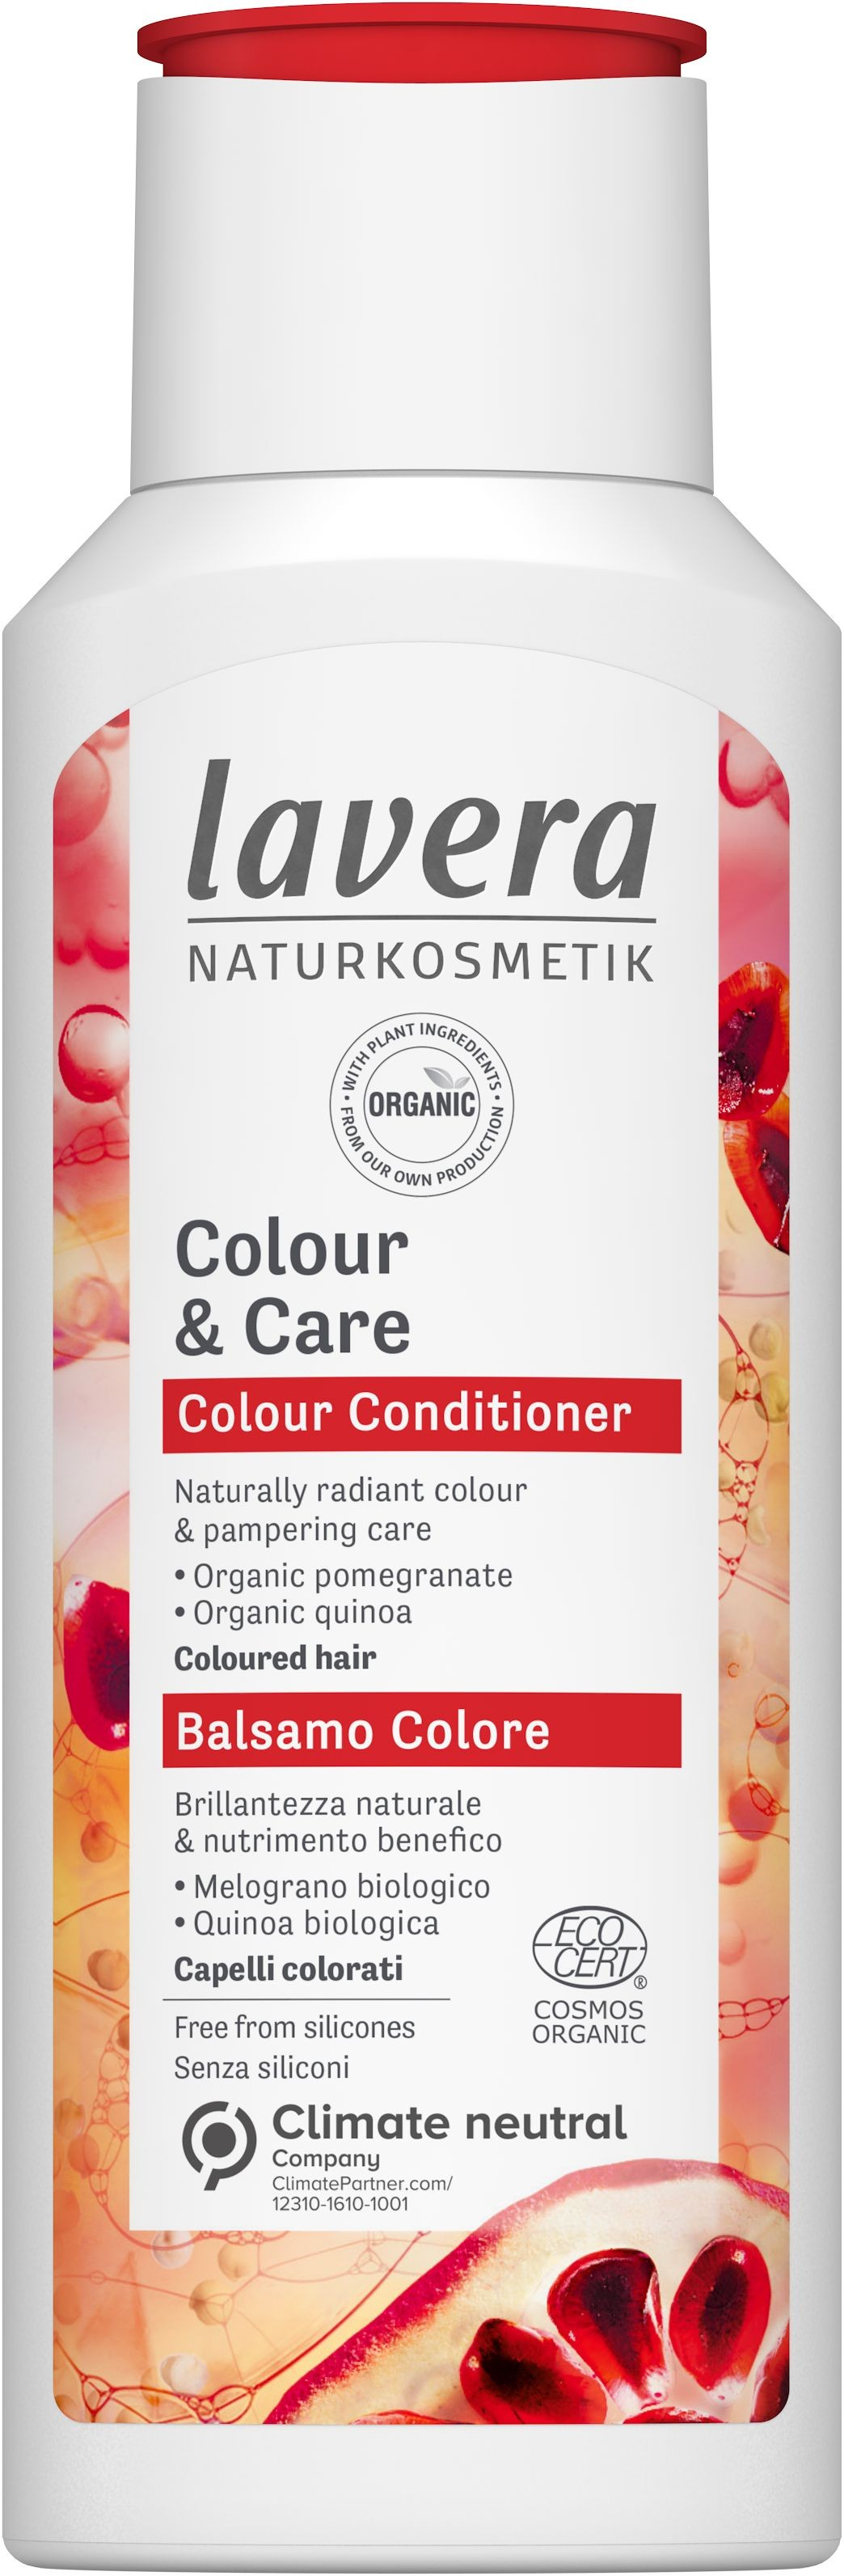 Lavera pomegranate Colour & Shine Conditioner